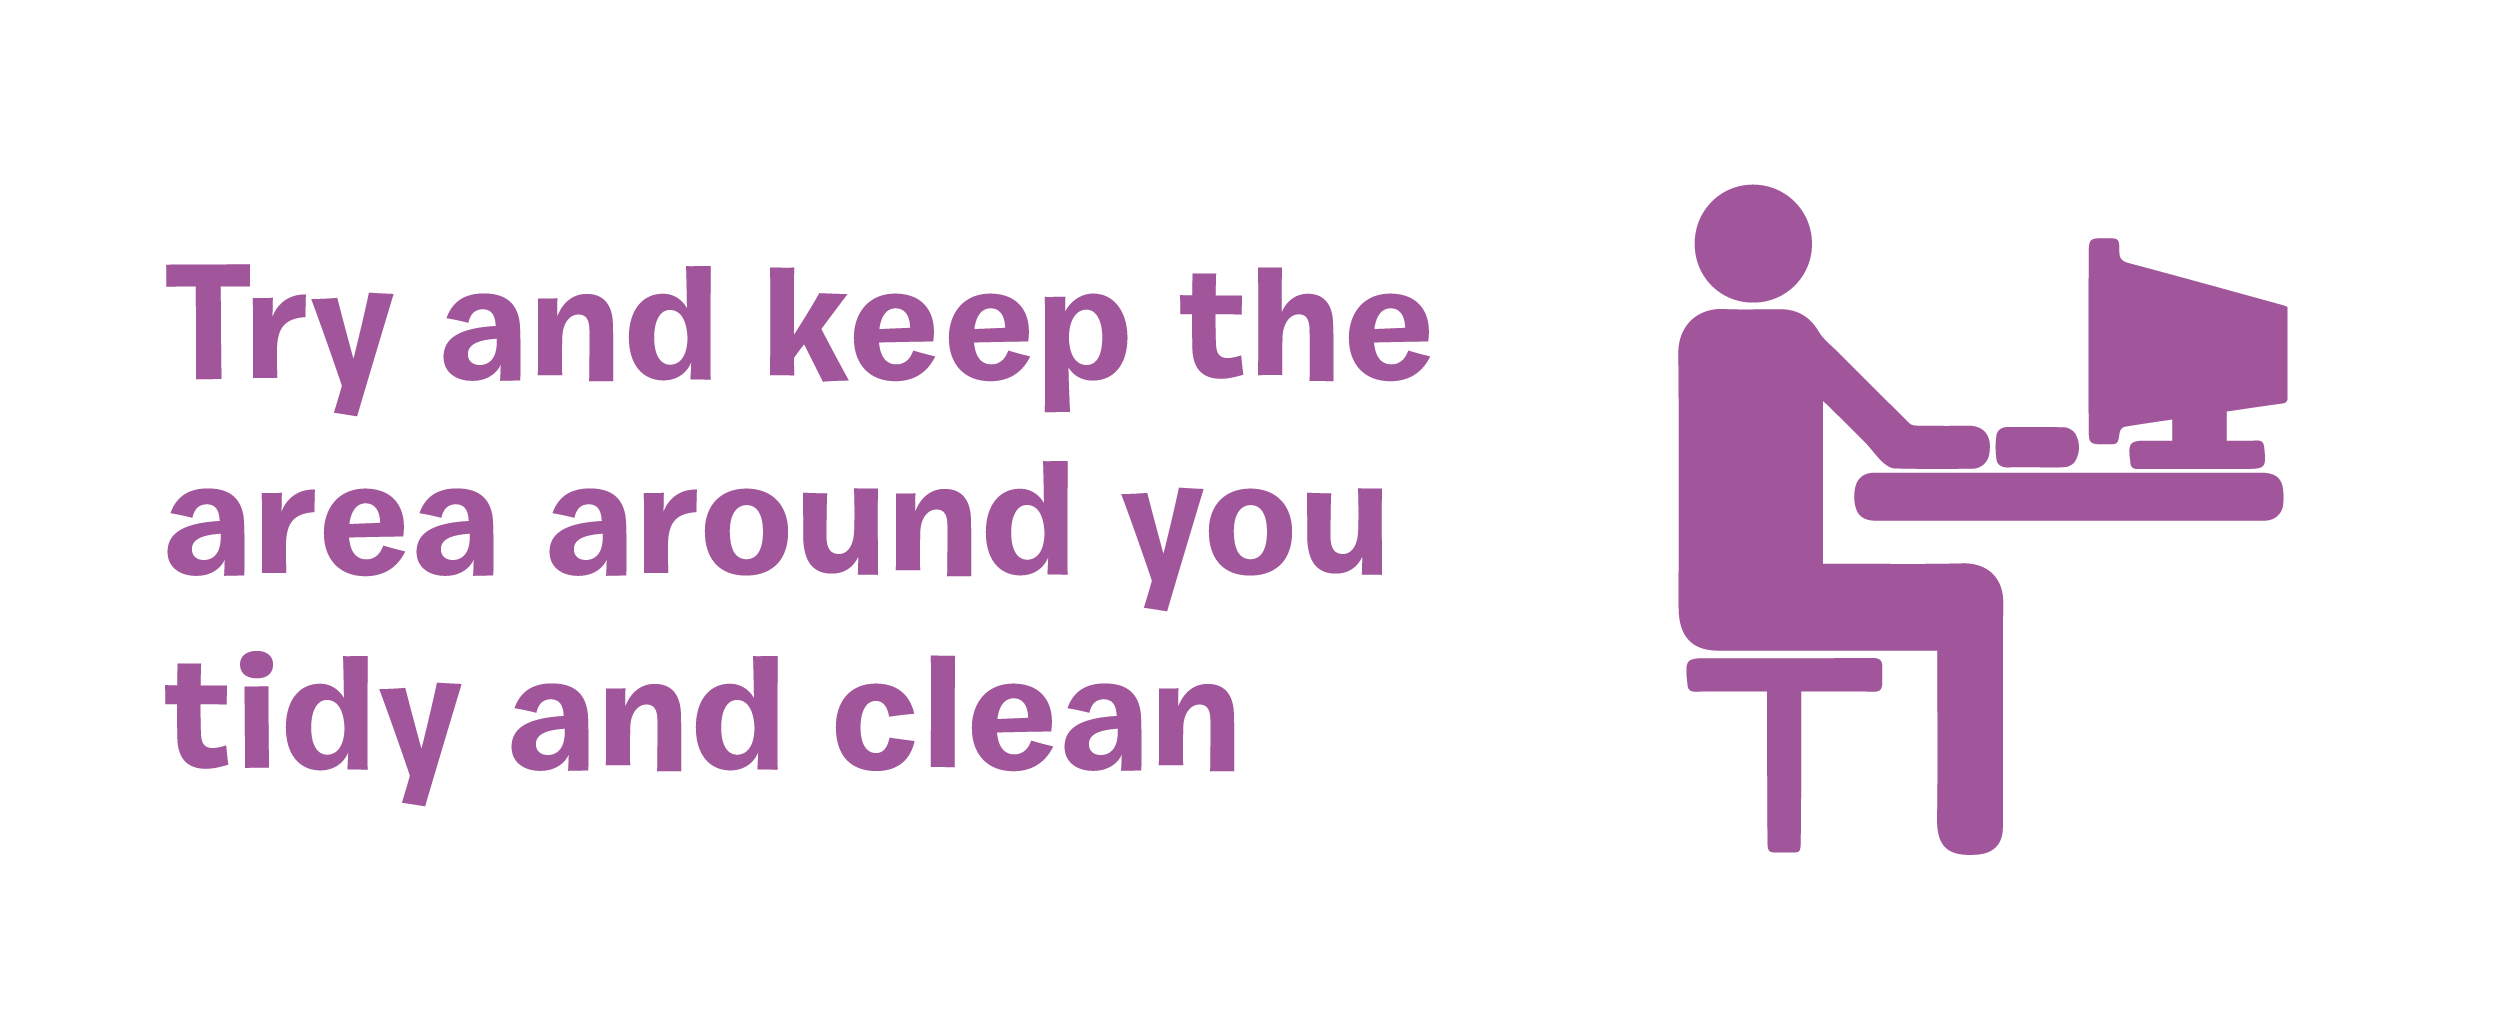 Try and keep the area around you tidy and clean